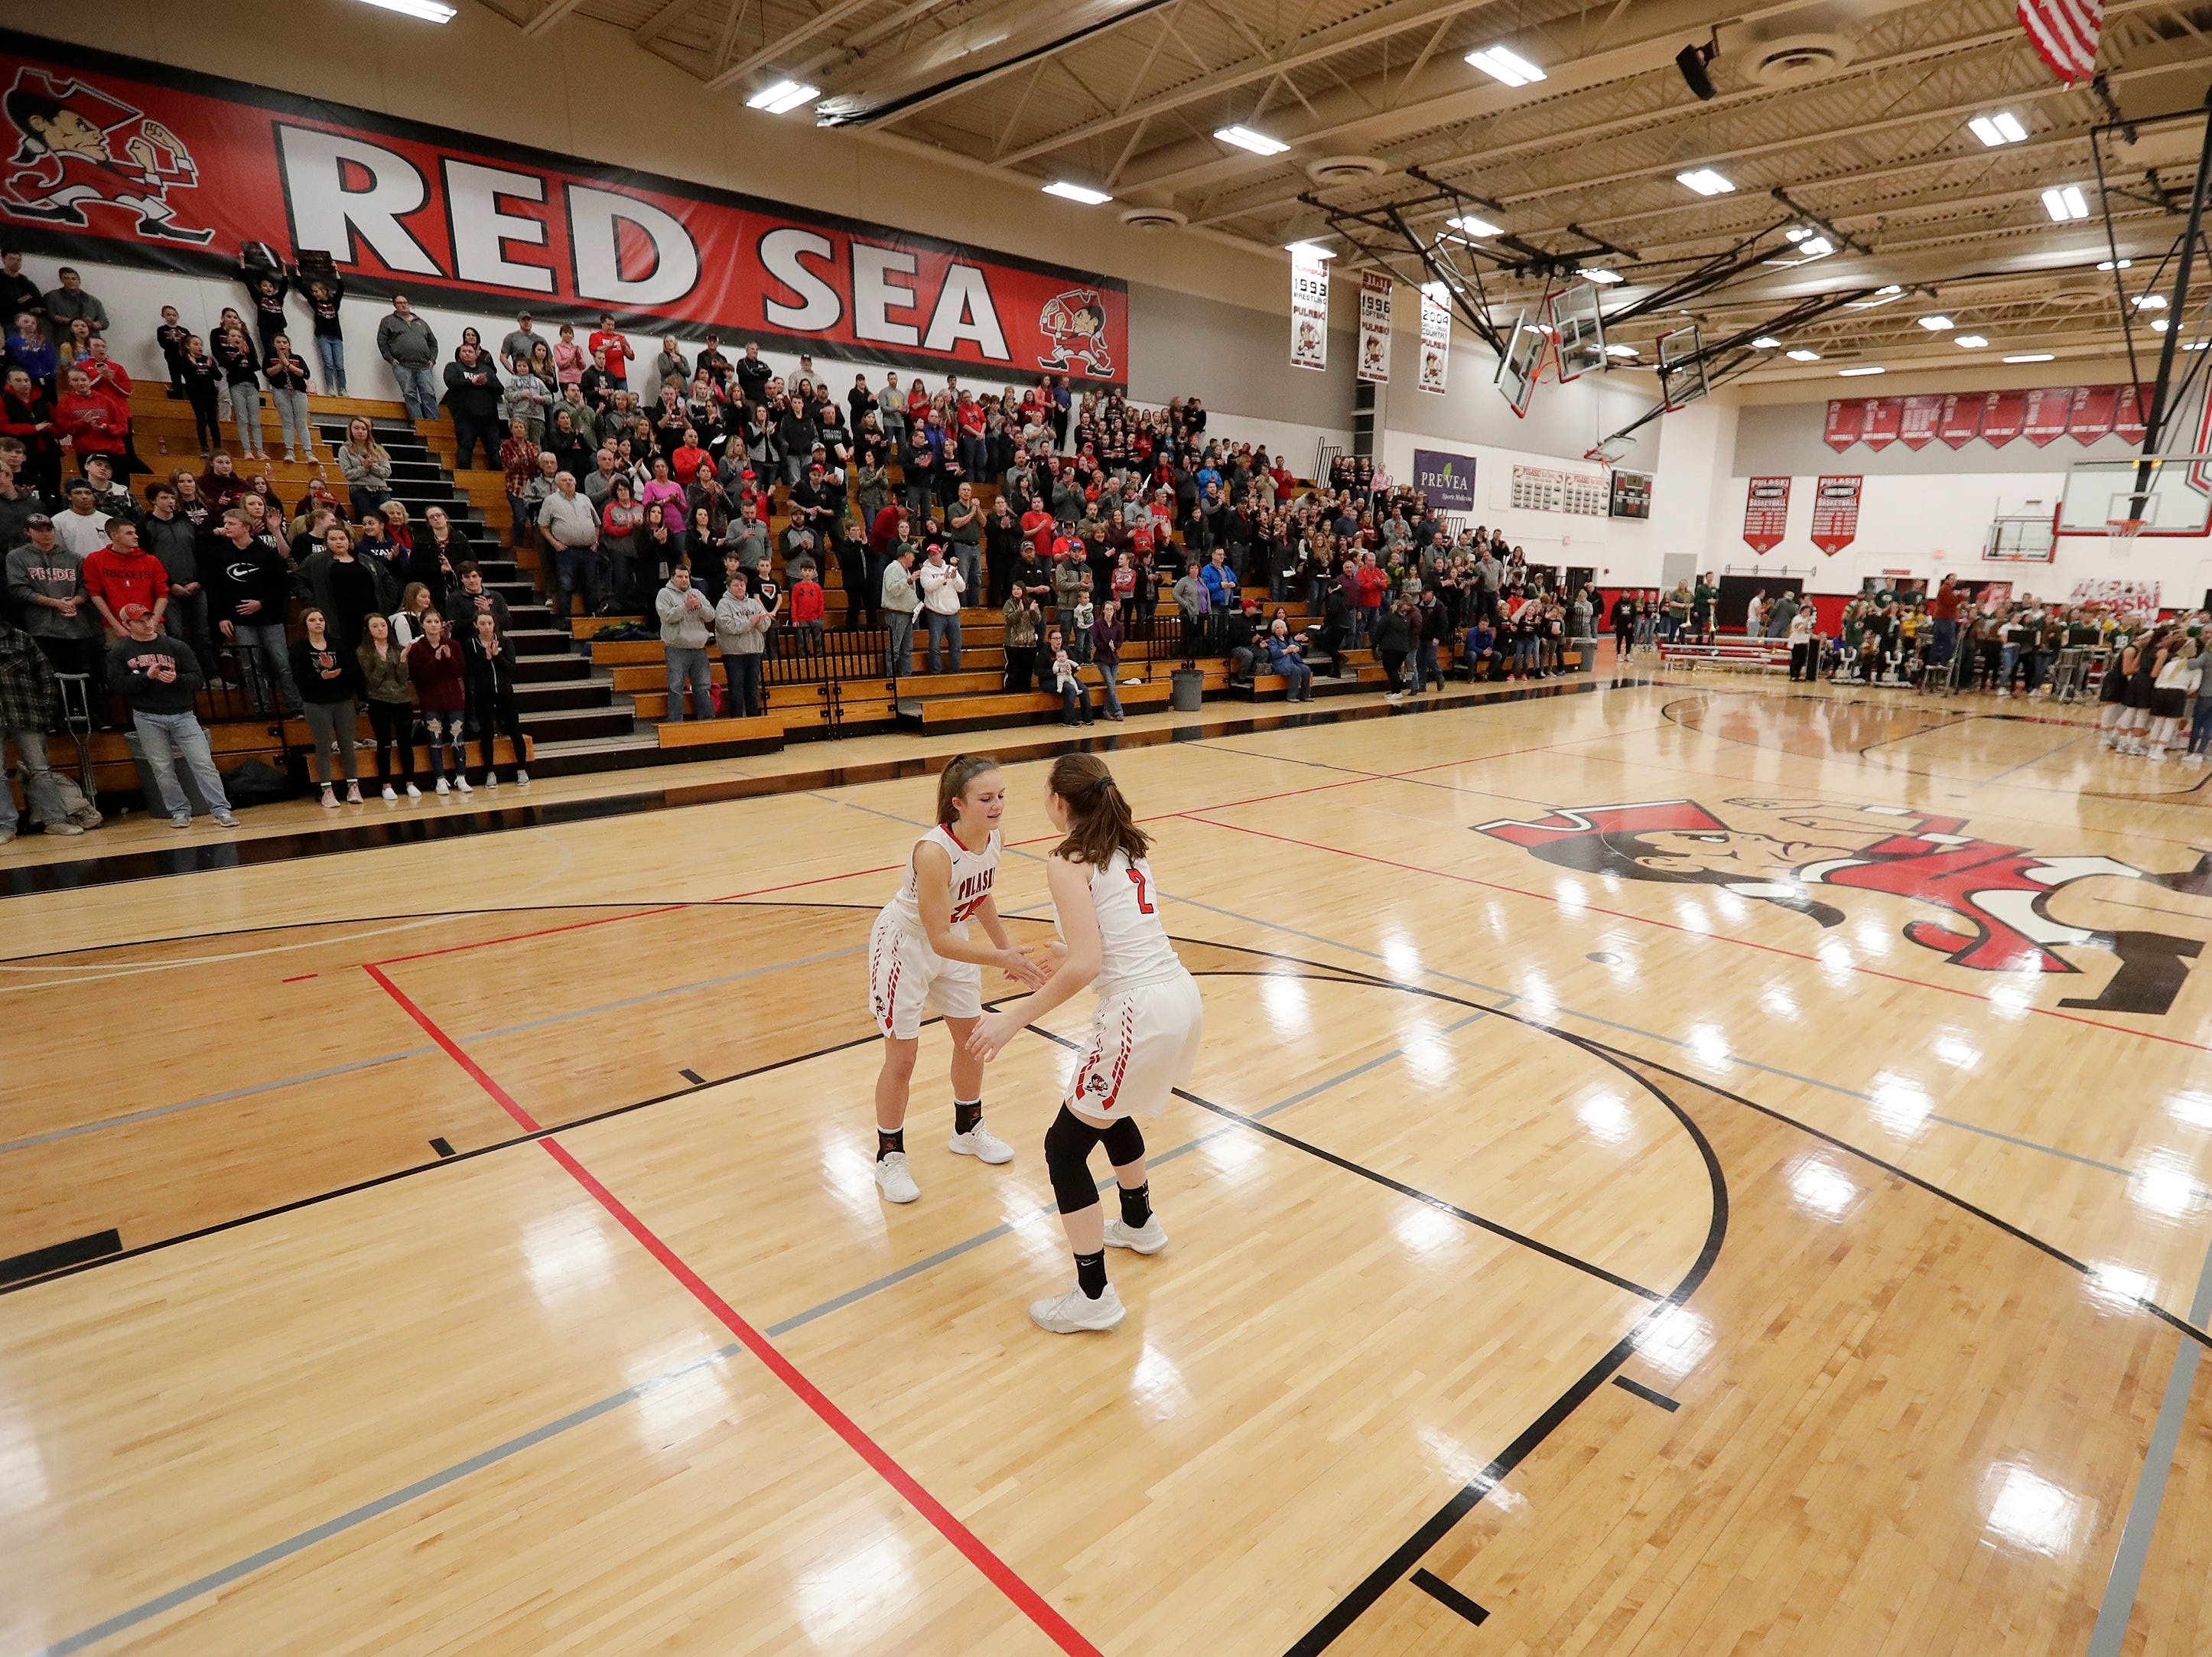 Pulaski's Isabel Majewski (2) is introduced for a girls basketball game at Pulaski high school on Friday, January 4, 2019 in Pulaski, Wis.